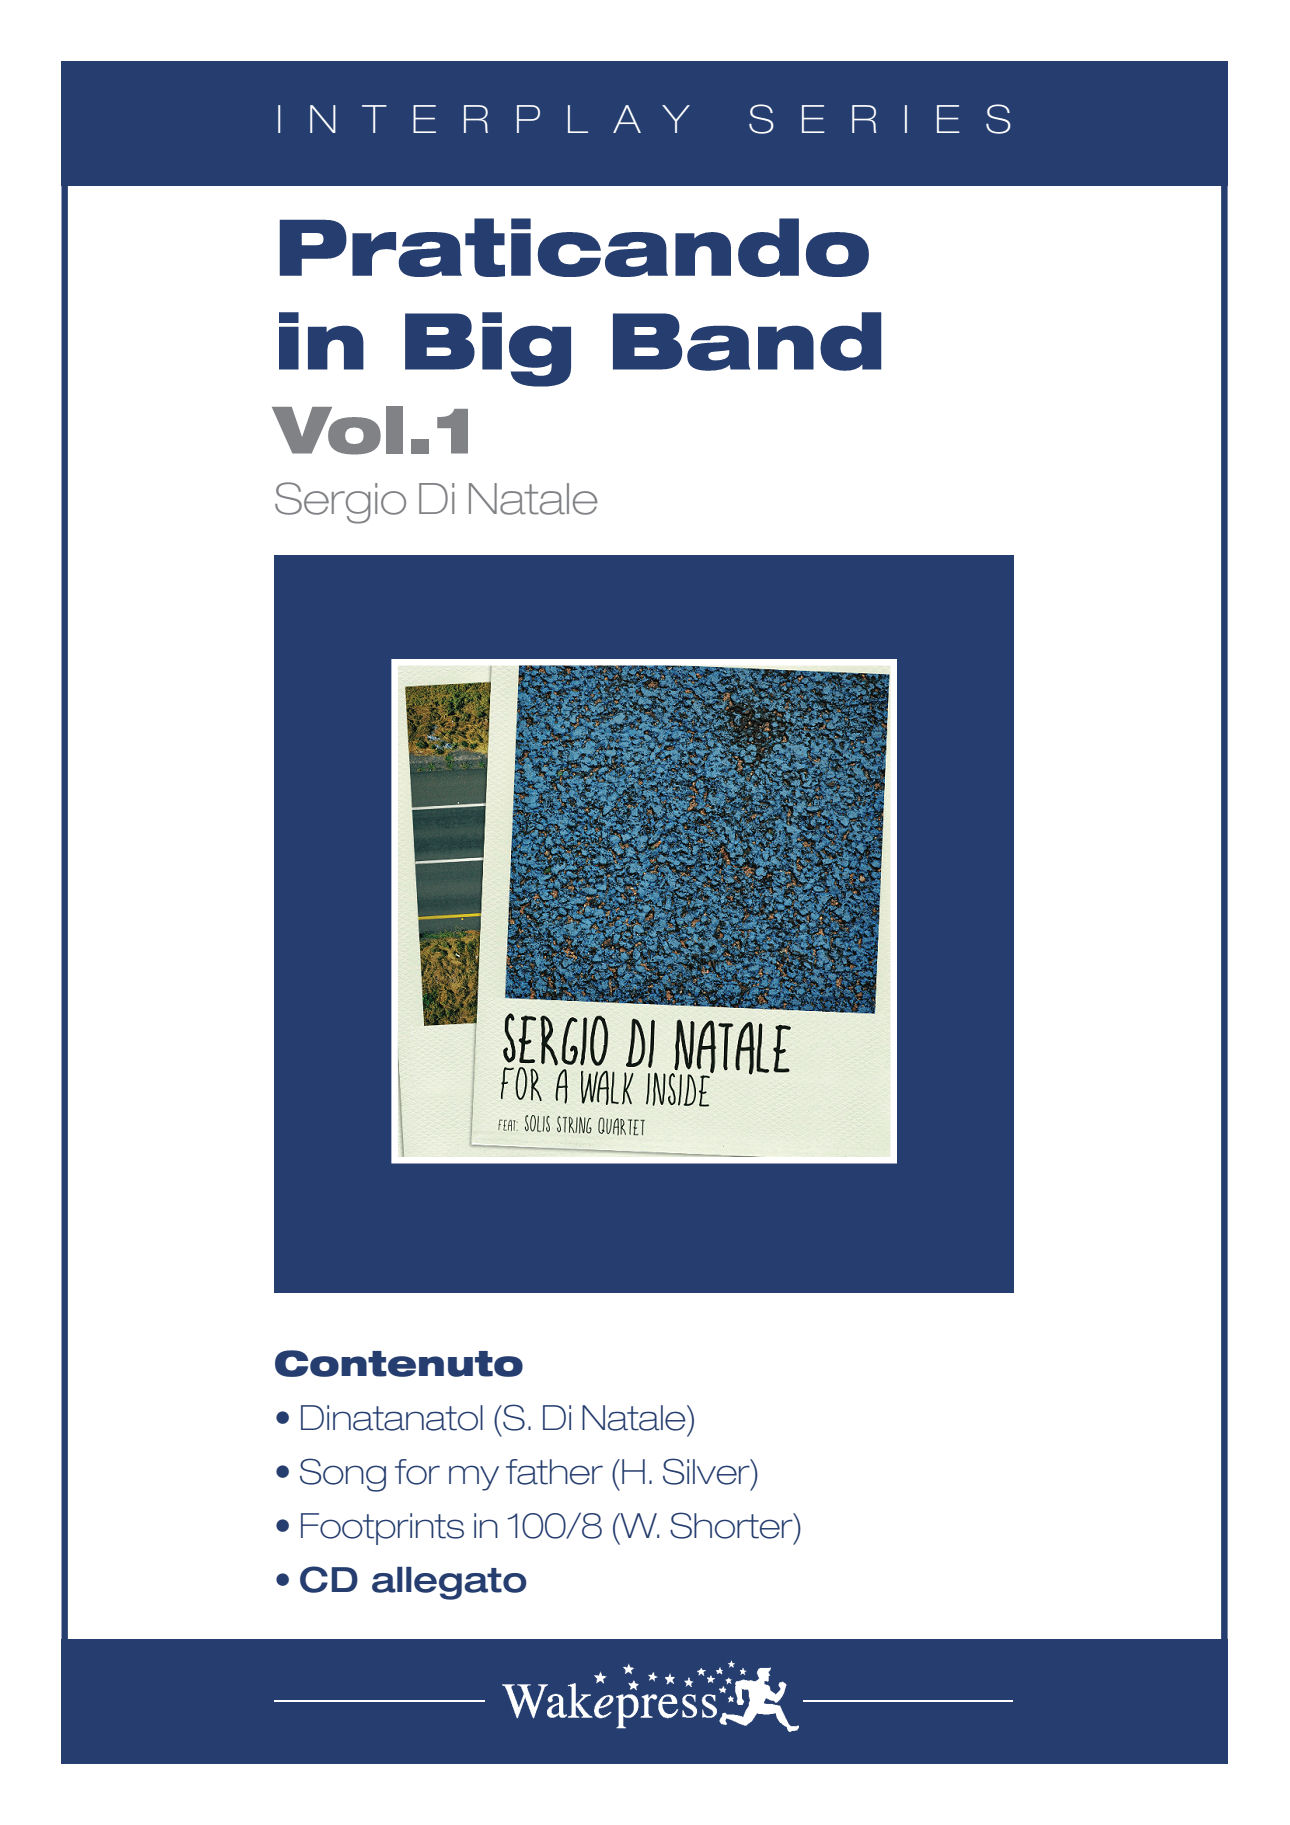 Copertina di PRATICANDO IN BIG BAND Vol.1